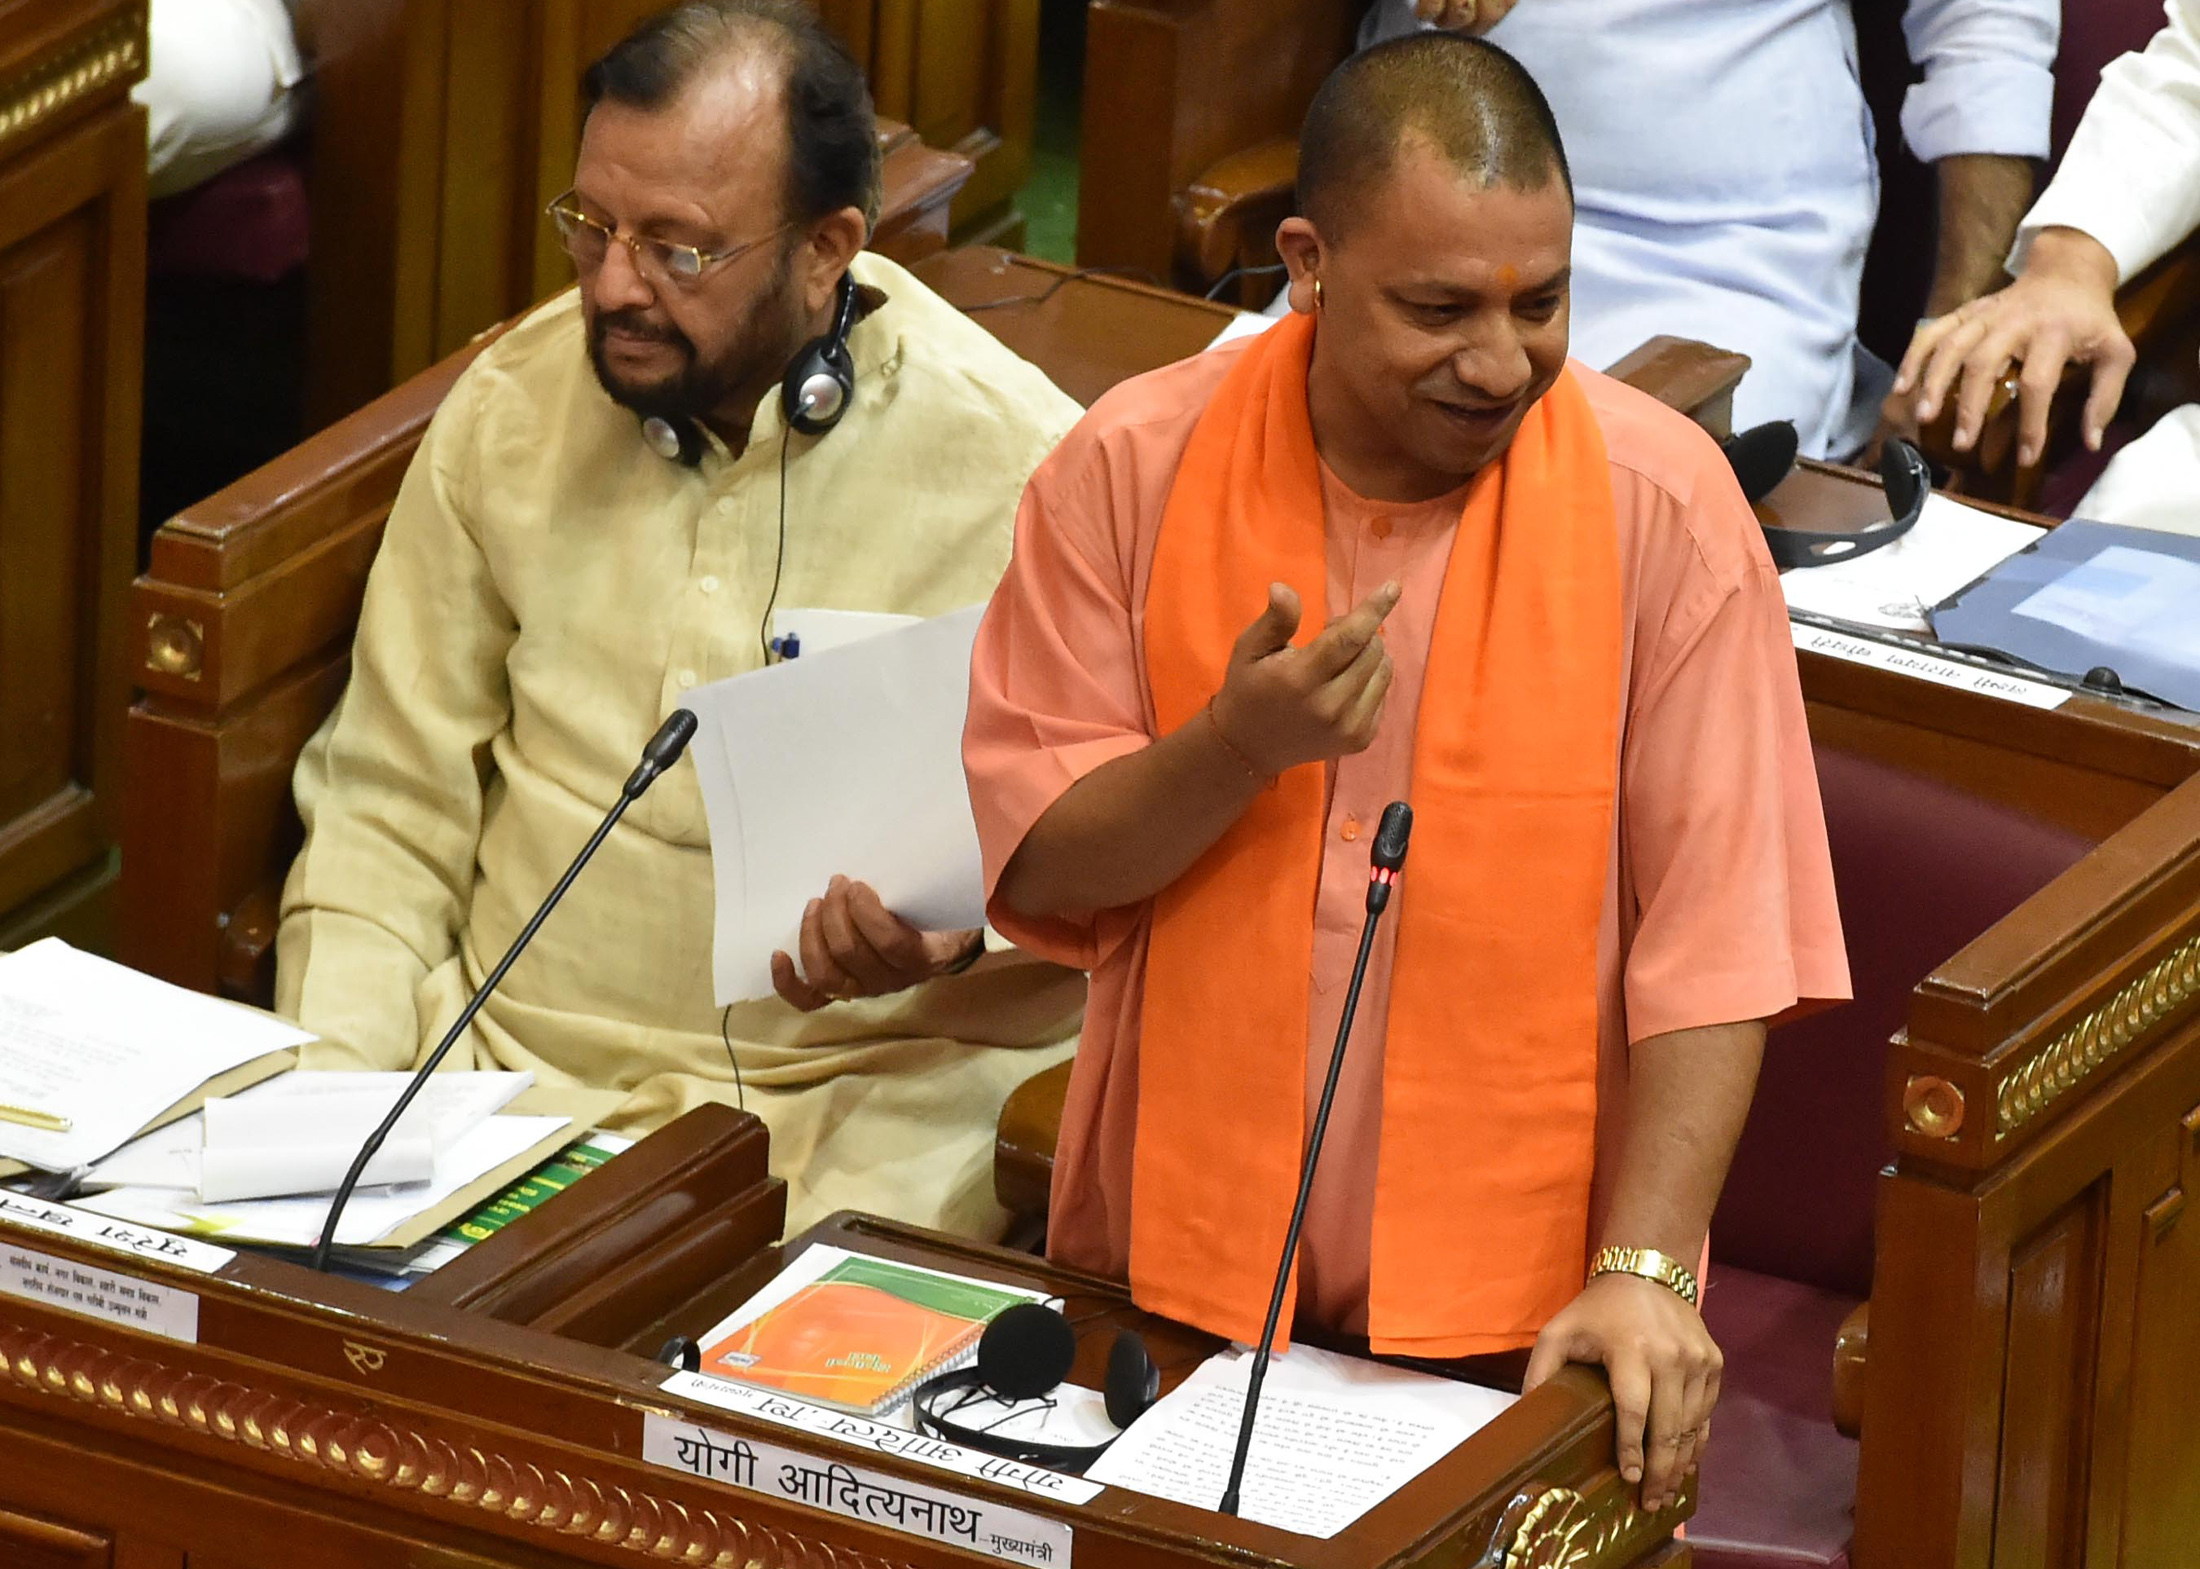 Uttar Pradesh Chief Minister Yogi Adityanath addressing UP state assembly in Lucknow